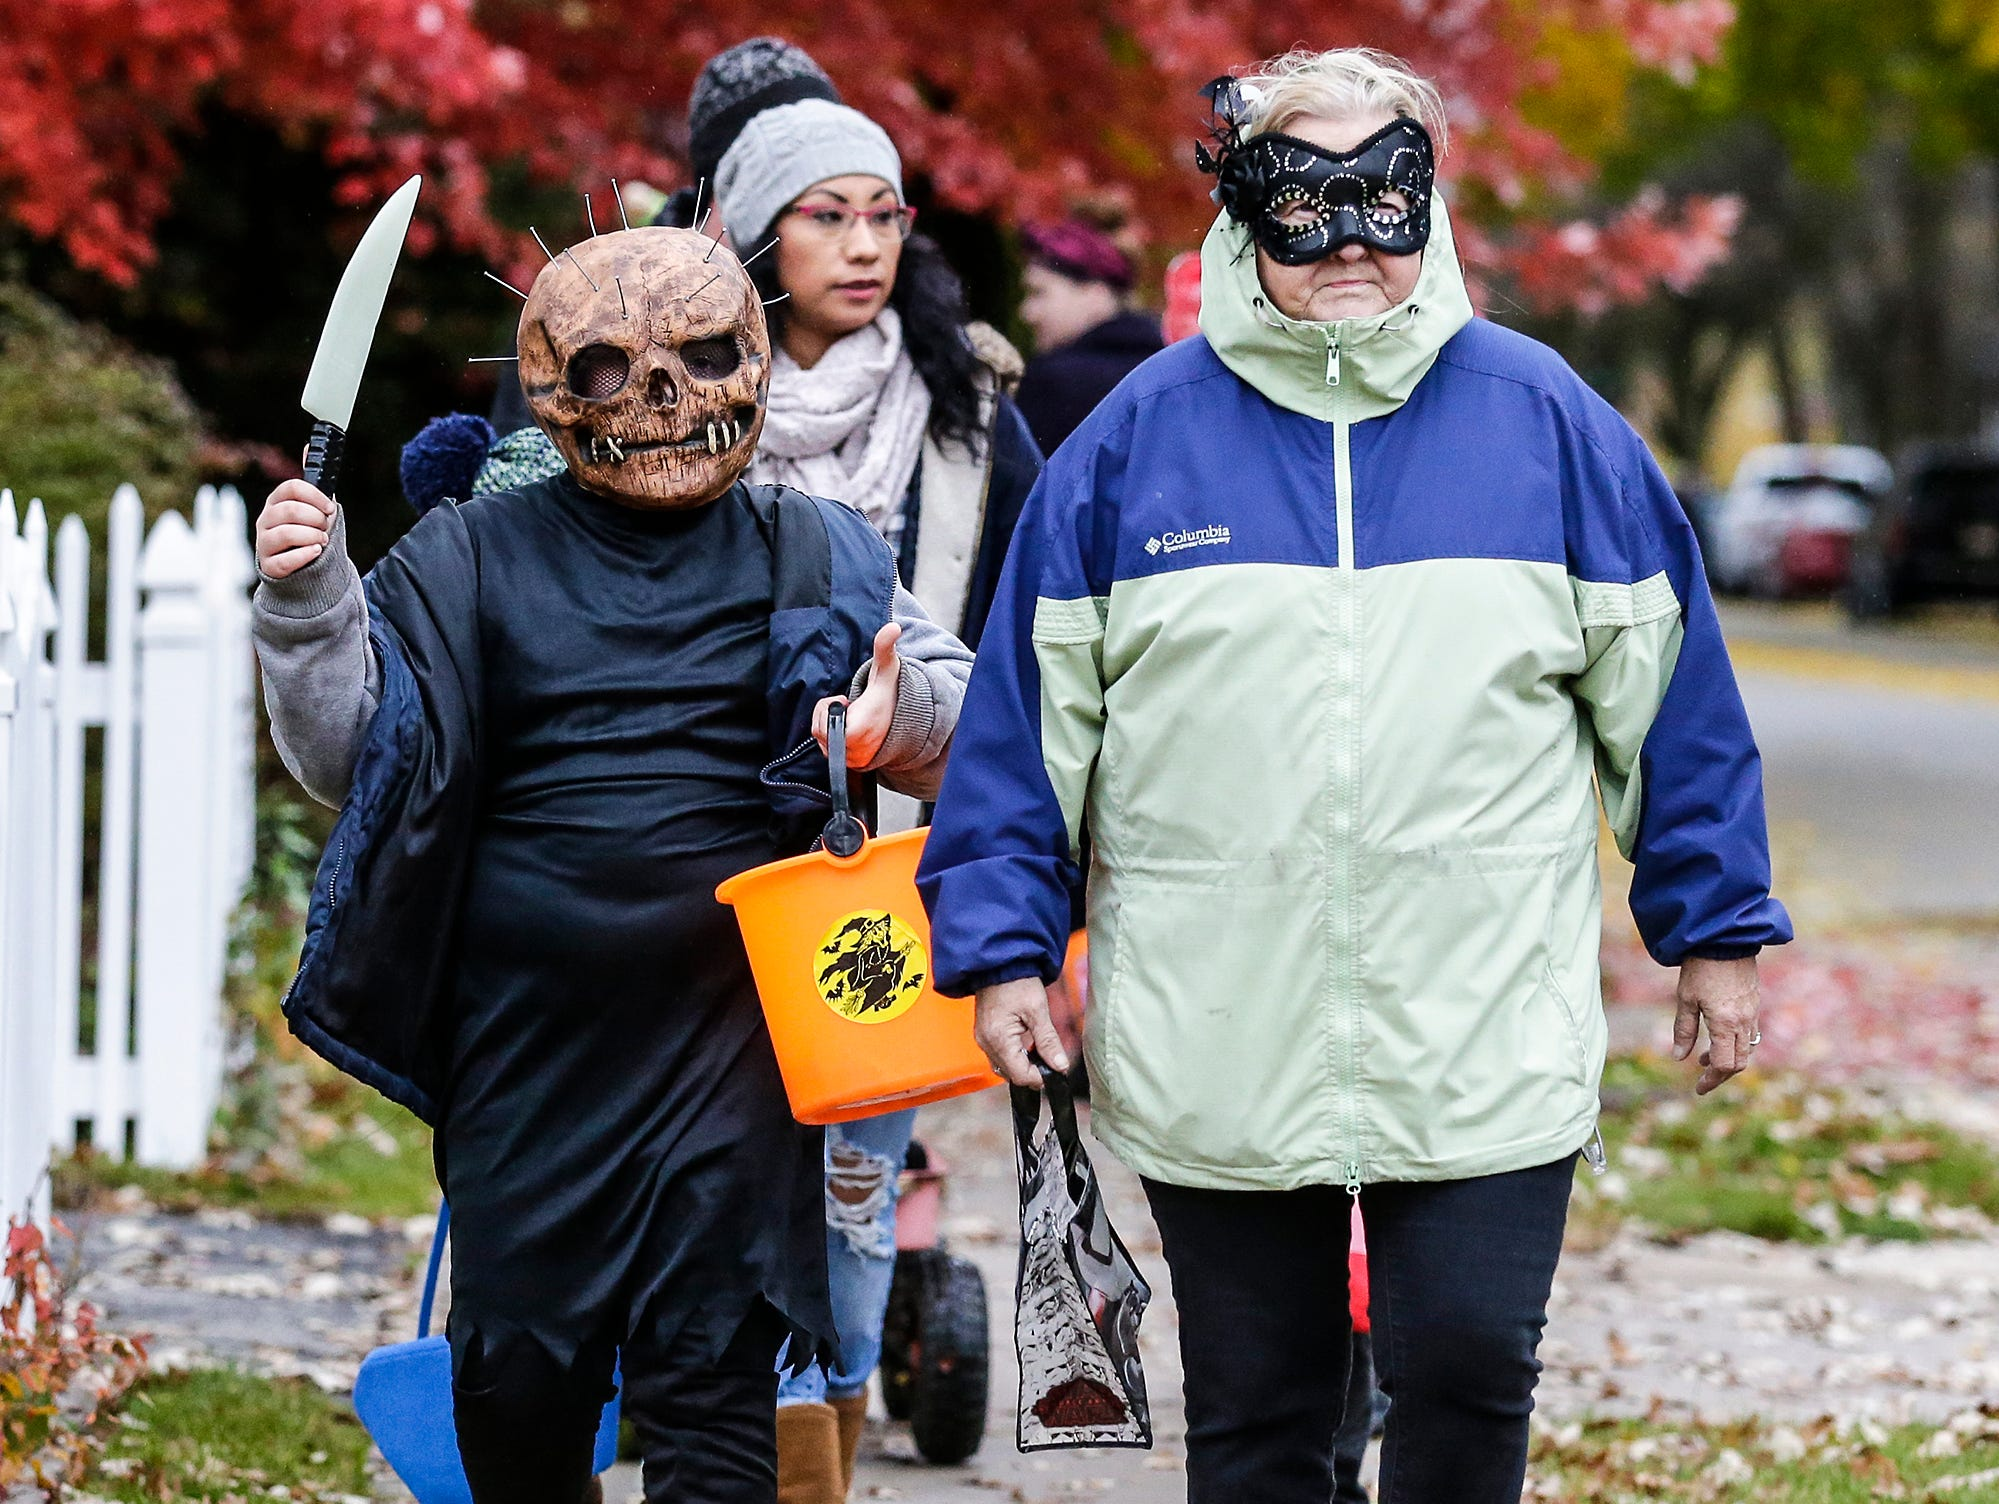 Dilan and Fran Meilahn of Fond du Lac were out trick or treating Sunday, October 28, 2018 in Fond du Lac, Wisconsin. Doug Raflik/USA TODAY NETWORK-Wisconsin